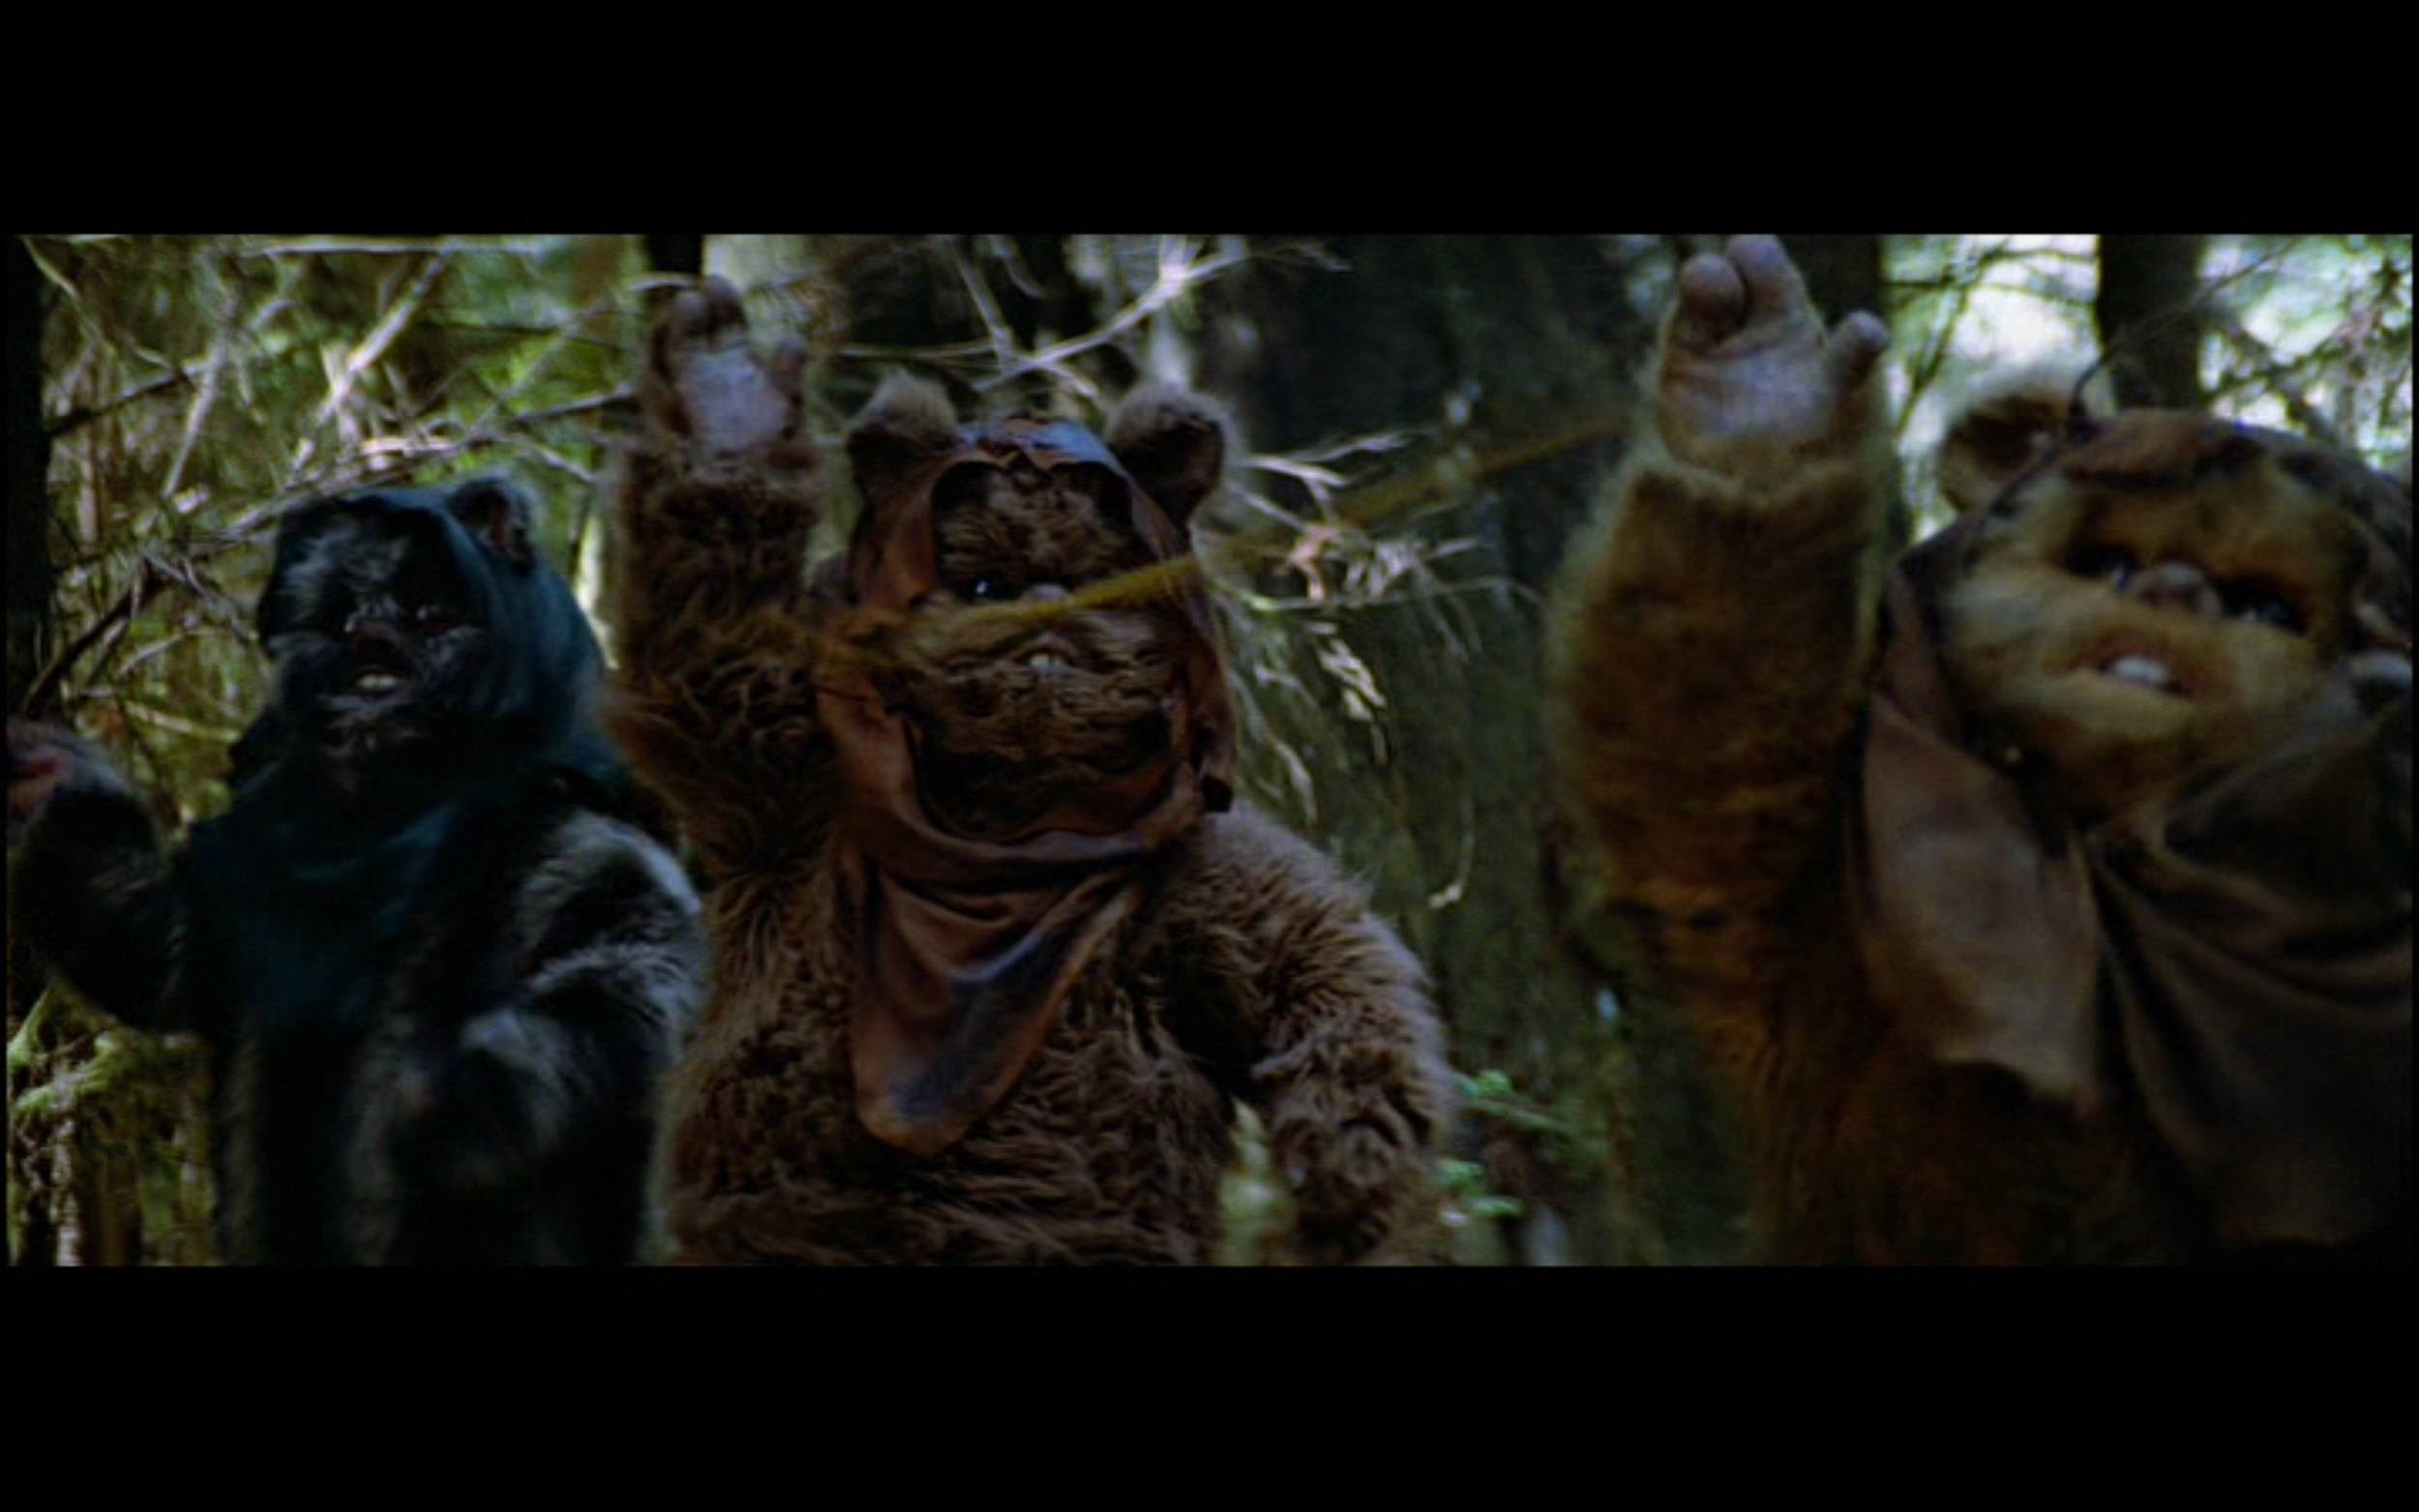 Figure 2: Ewoks swing rocks attached to ropes, in most cases knocking out stormtroopers, although poor Wicket ends up taking himself out! Image credit: screen capture from  Return of the Jedi  (20th century Fox/Lucasfilm).